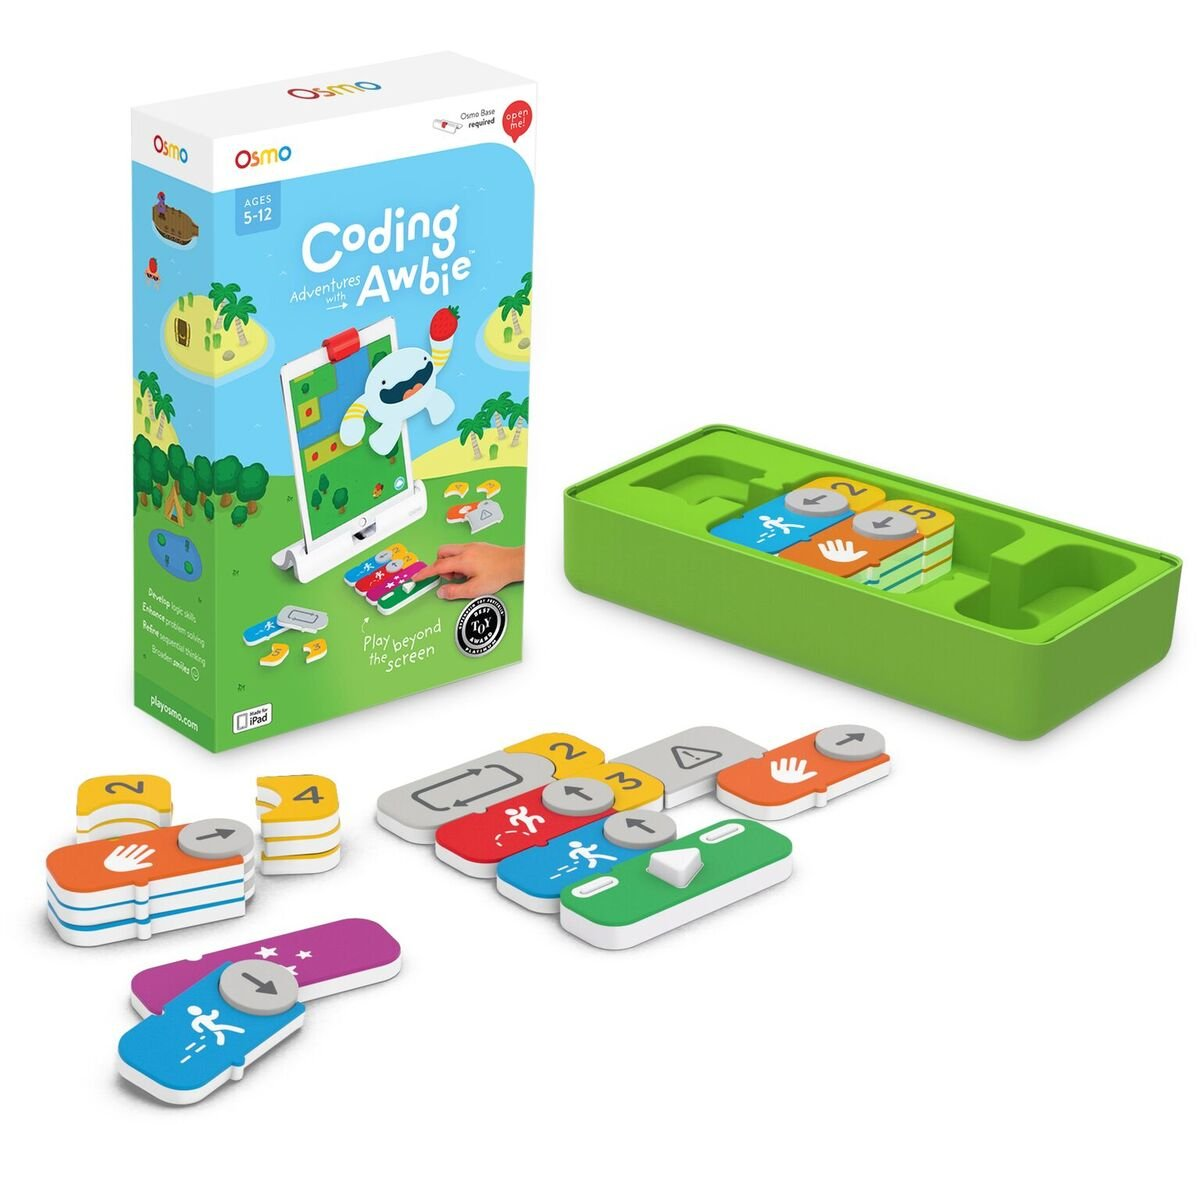 Osmo - Coding Awbie Game - Ages 5-12 - Coding & Problem Solving - For iPad and Fire Tablet (Osmo Base Required) by Osmo